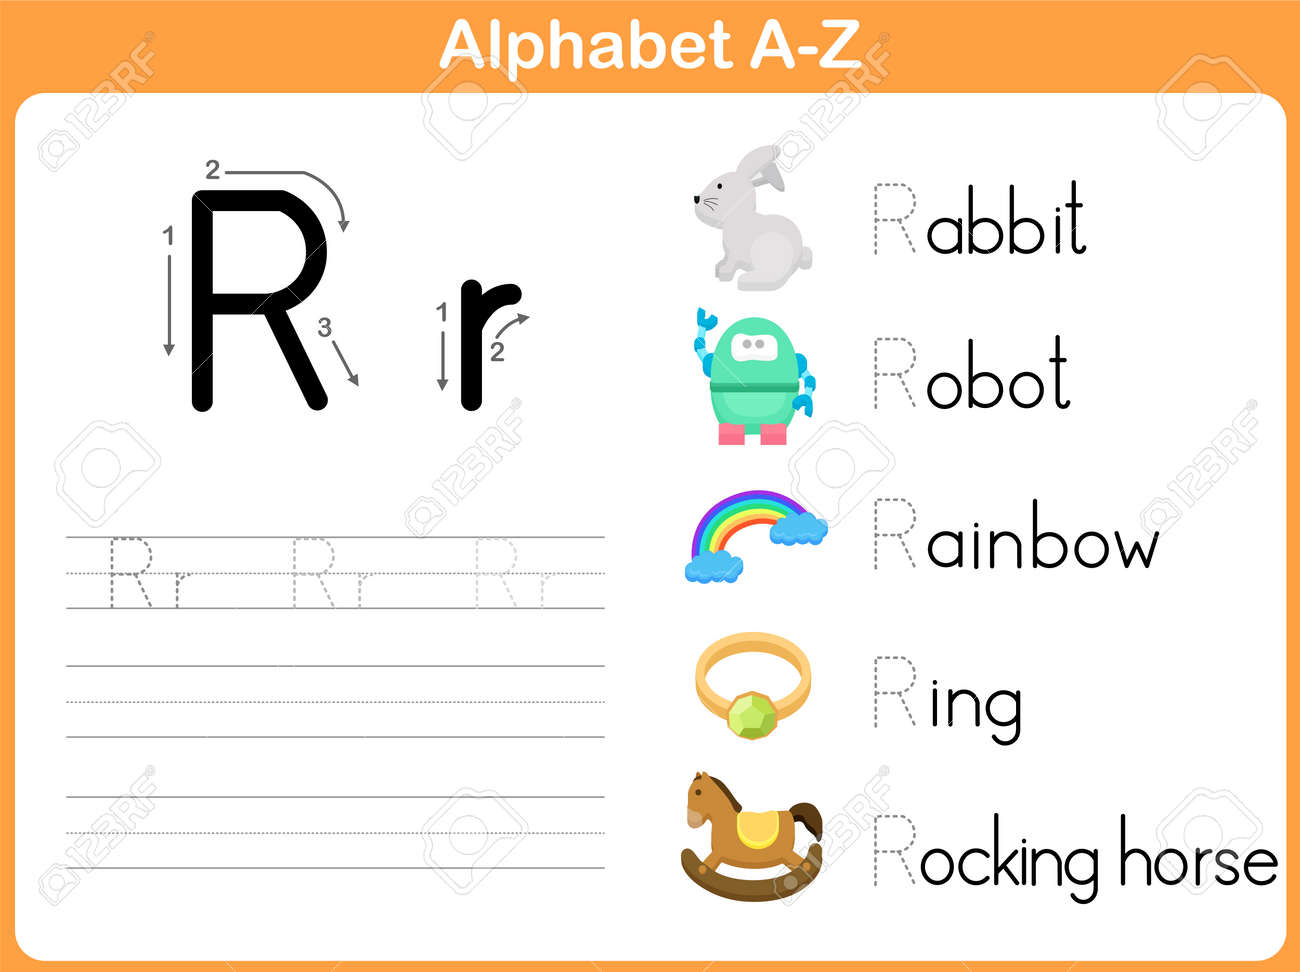 worksheet Child Support Worksheet Az alphabet tracing worksheets a z humorholics worksheet writing royalty free cliparts